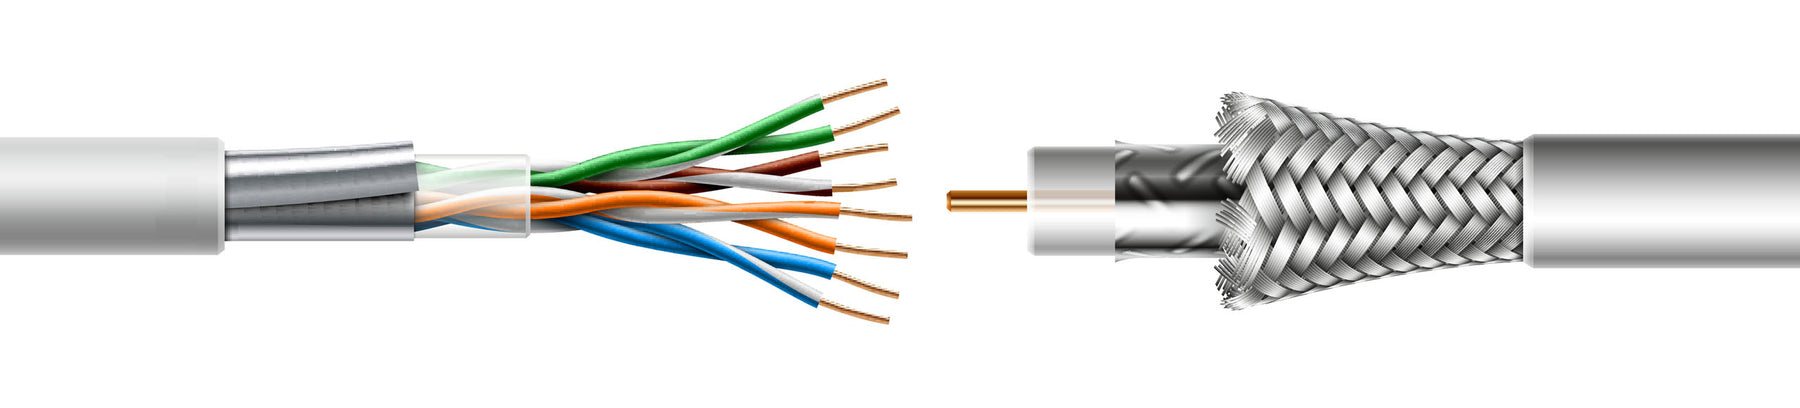 Shielded Ethernet Cable and Coaxial Cable